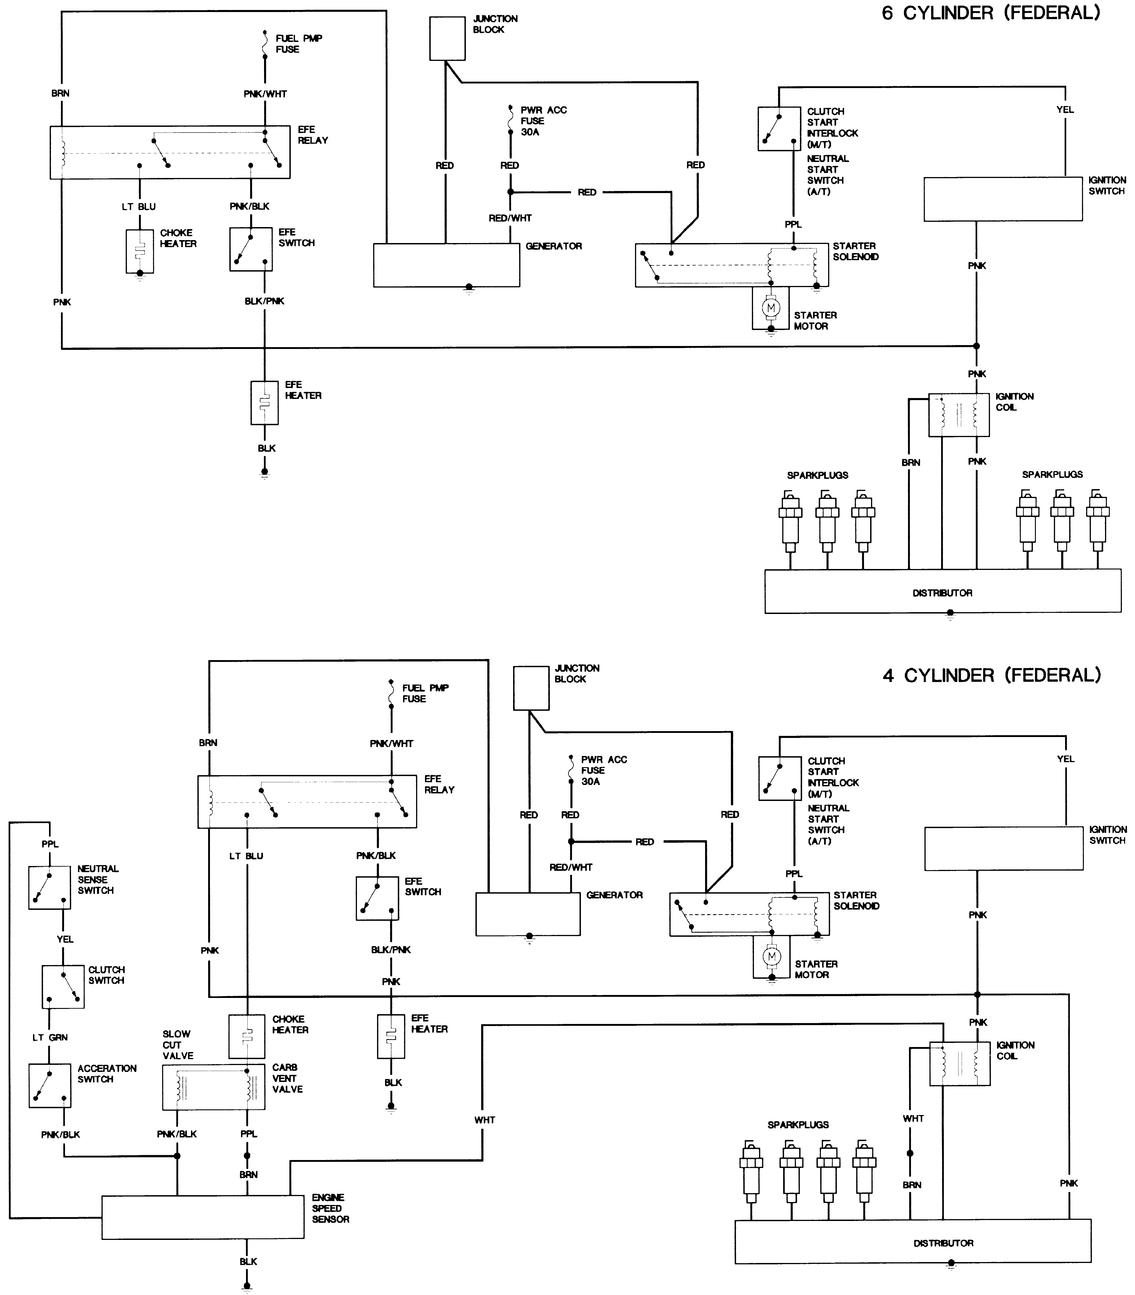 Can Anyone Find The Actual Choke Circuitry For My 1982 S10 Pickup With A Base Federal 1 9 Liter